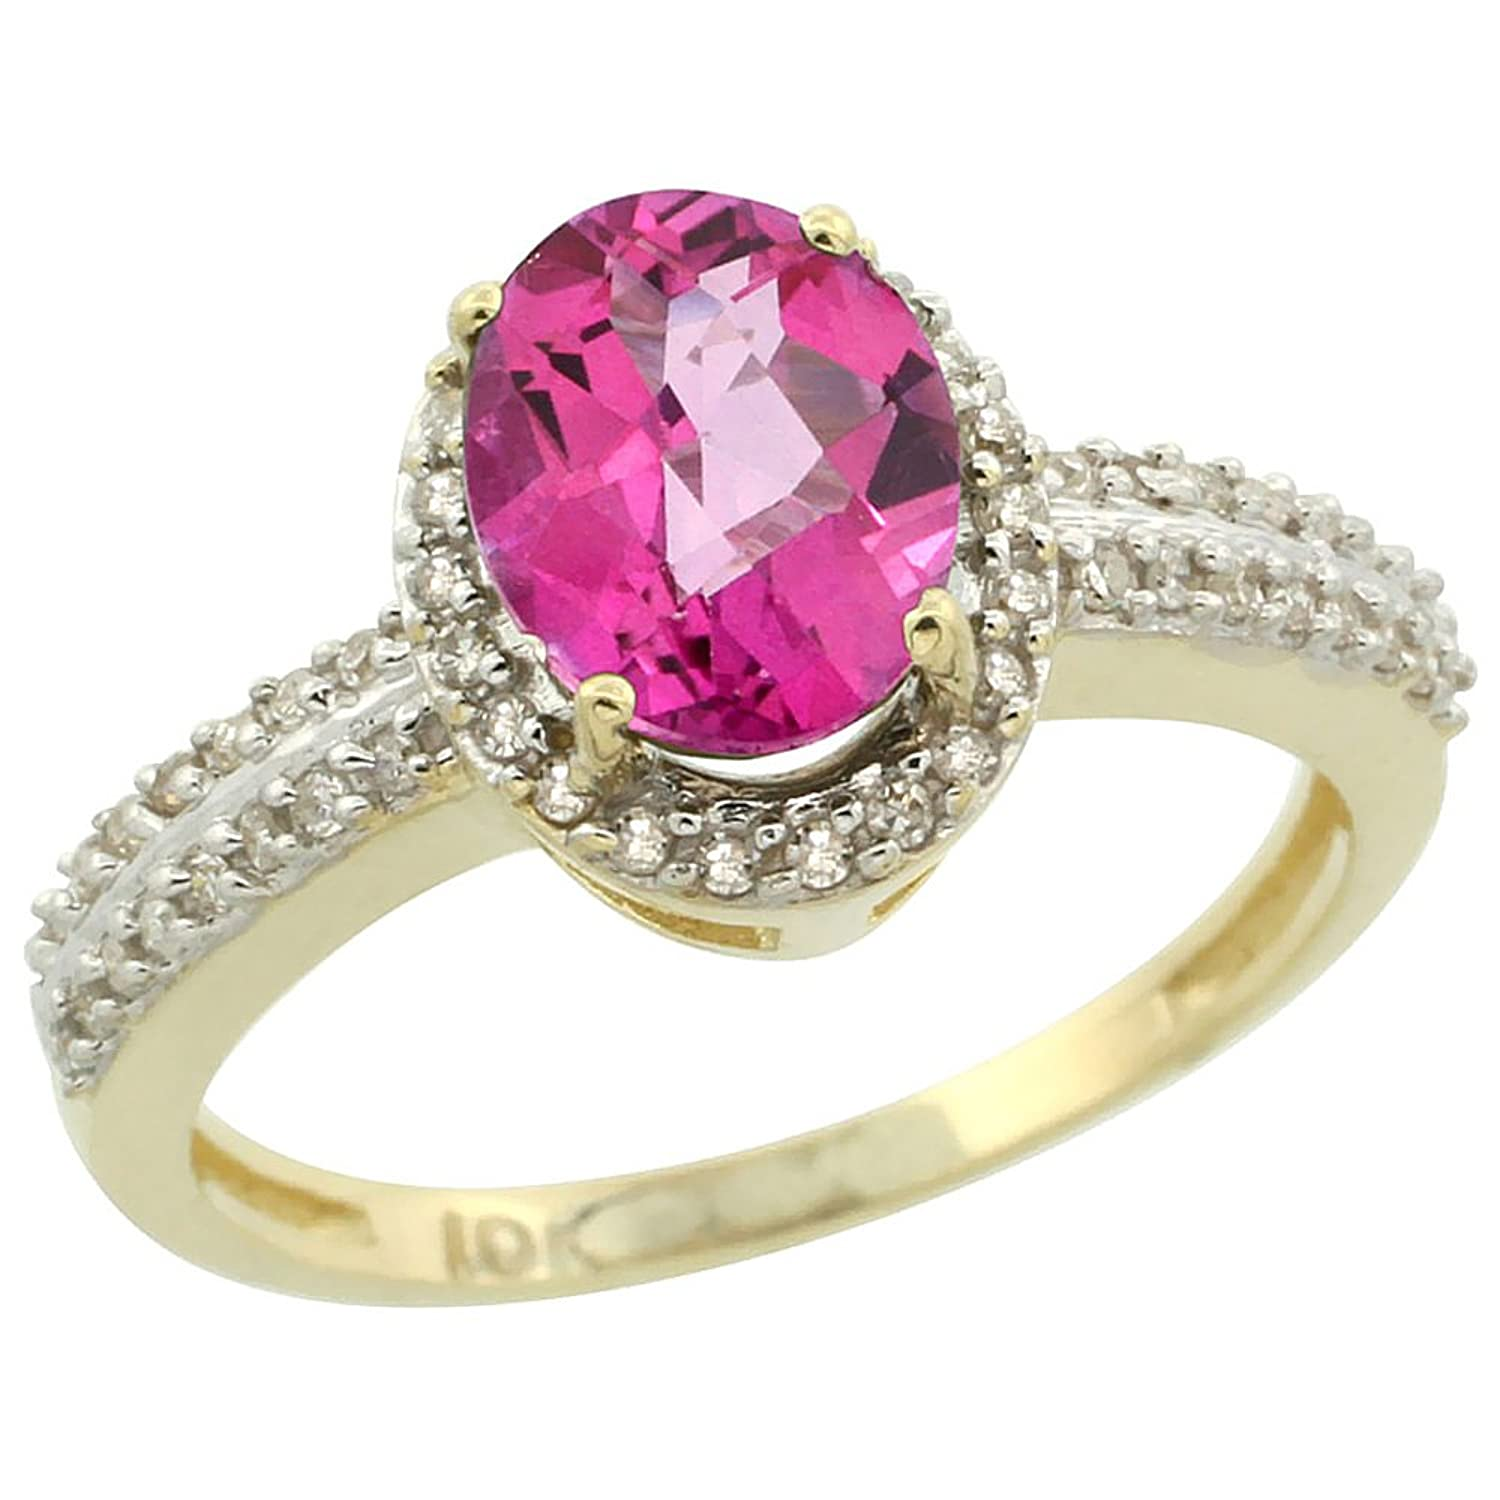 14K Yellow Gold Natural Pink Sapphire Ring Oval 8x6mm Diamond Halo ...